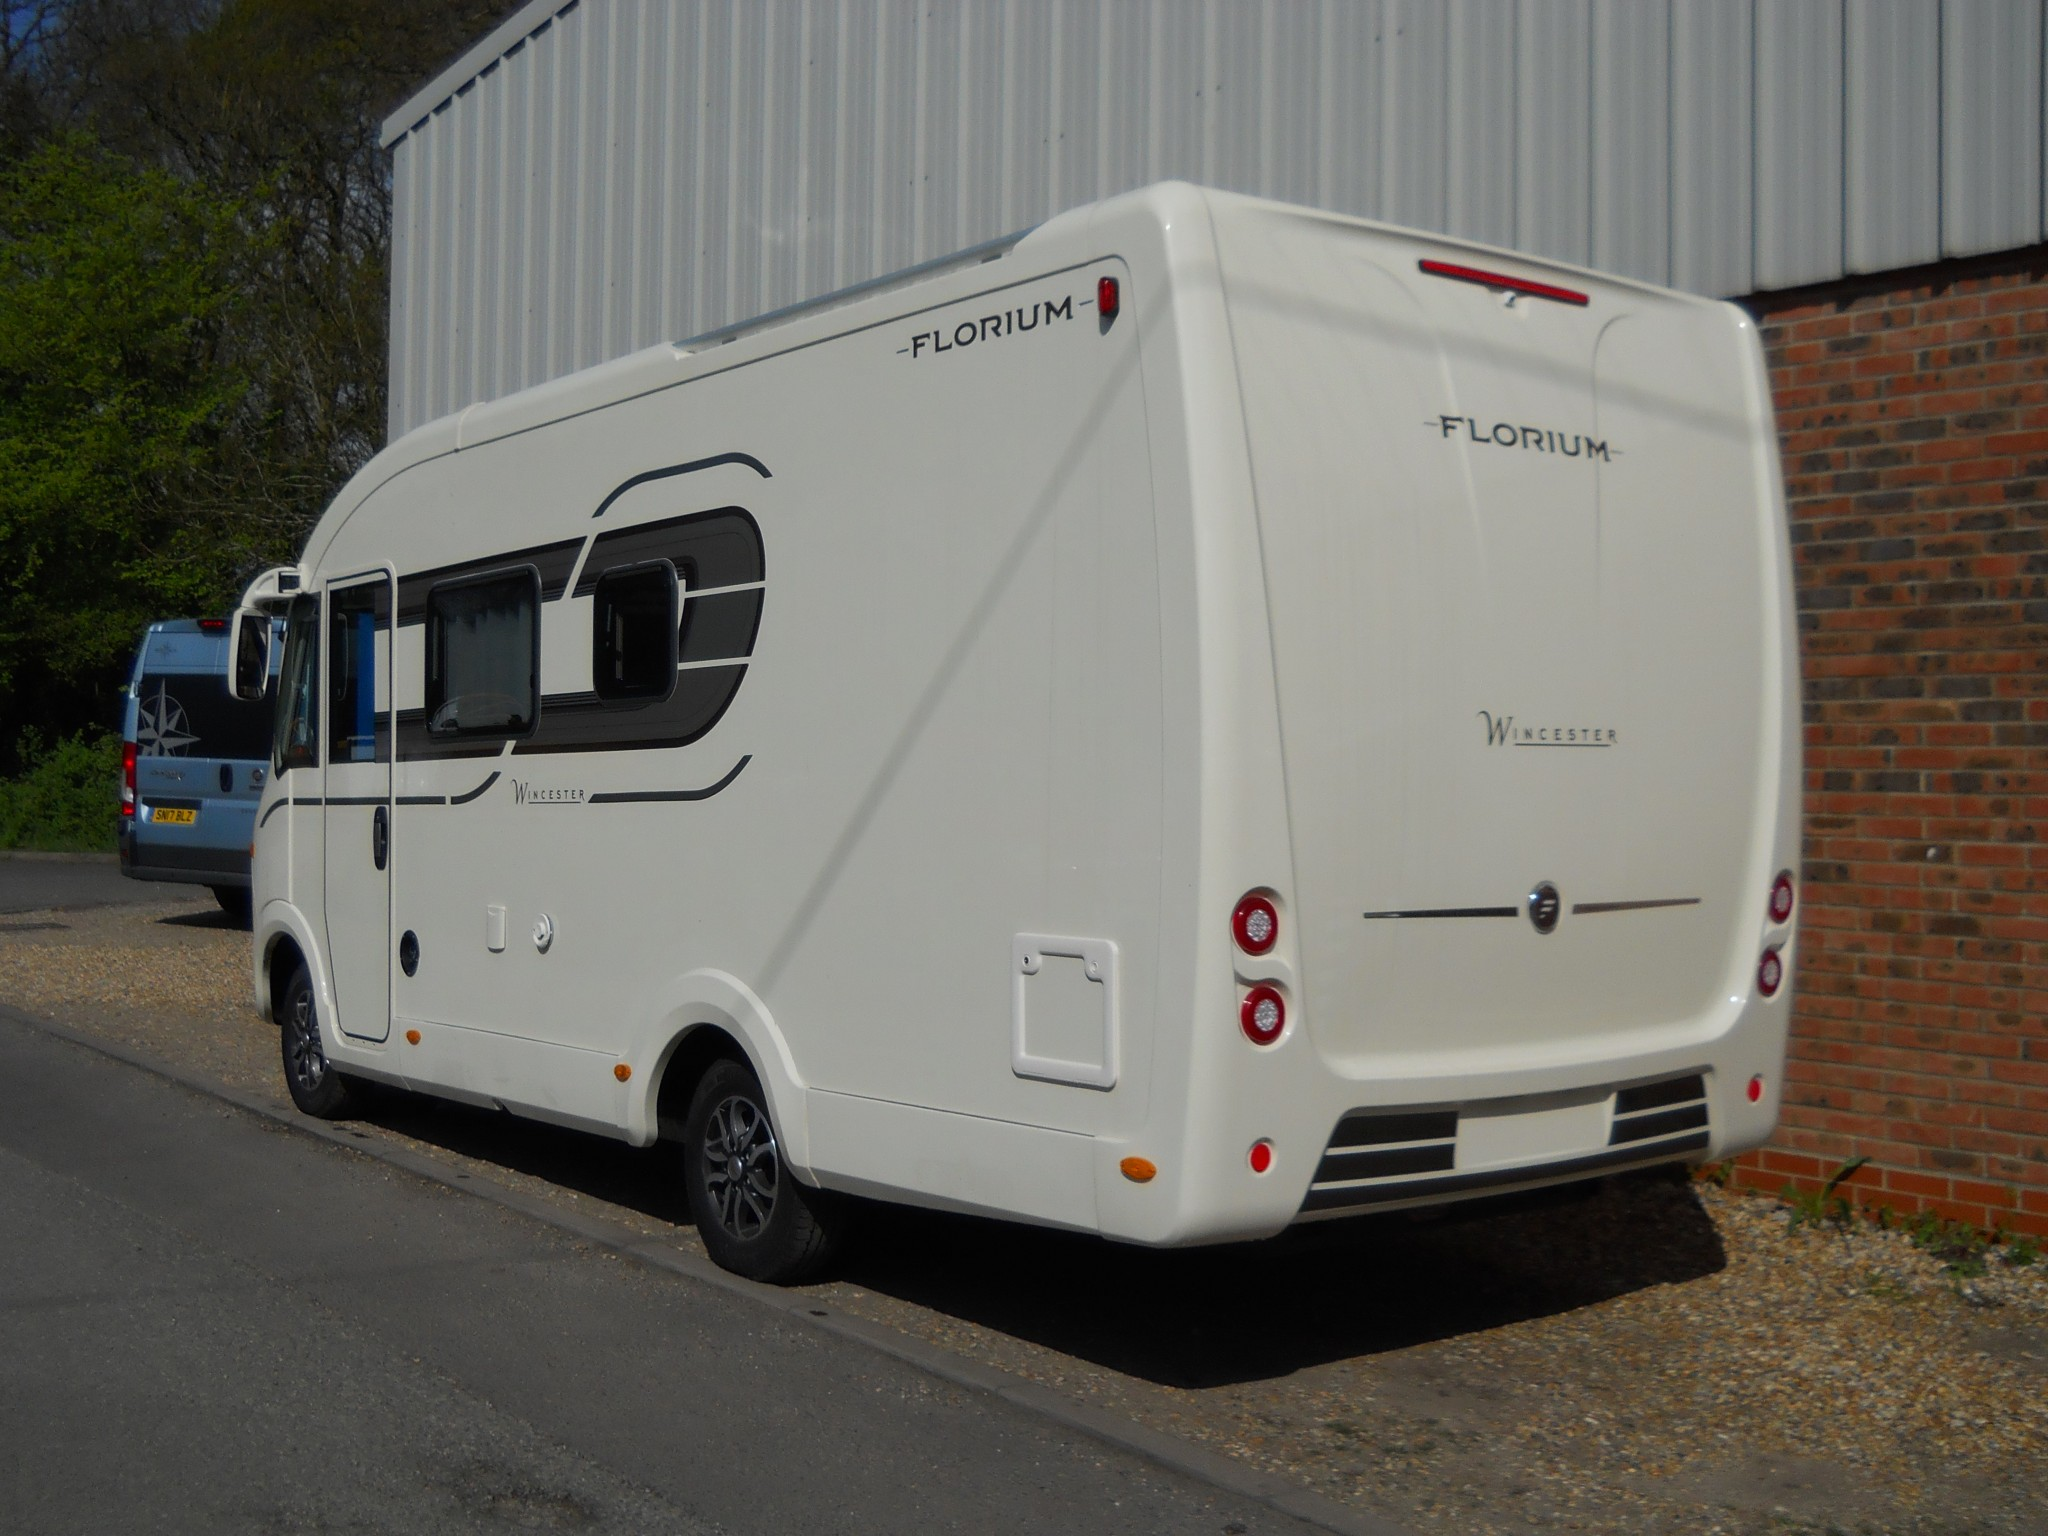 Nearly New 2018 Fleurette Florium Wincester 65 LMC 6 5m by Rapido